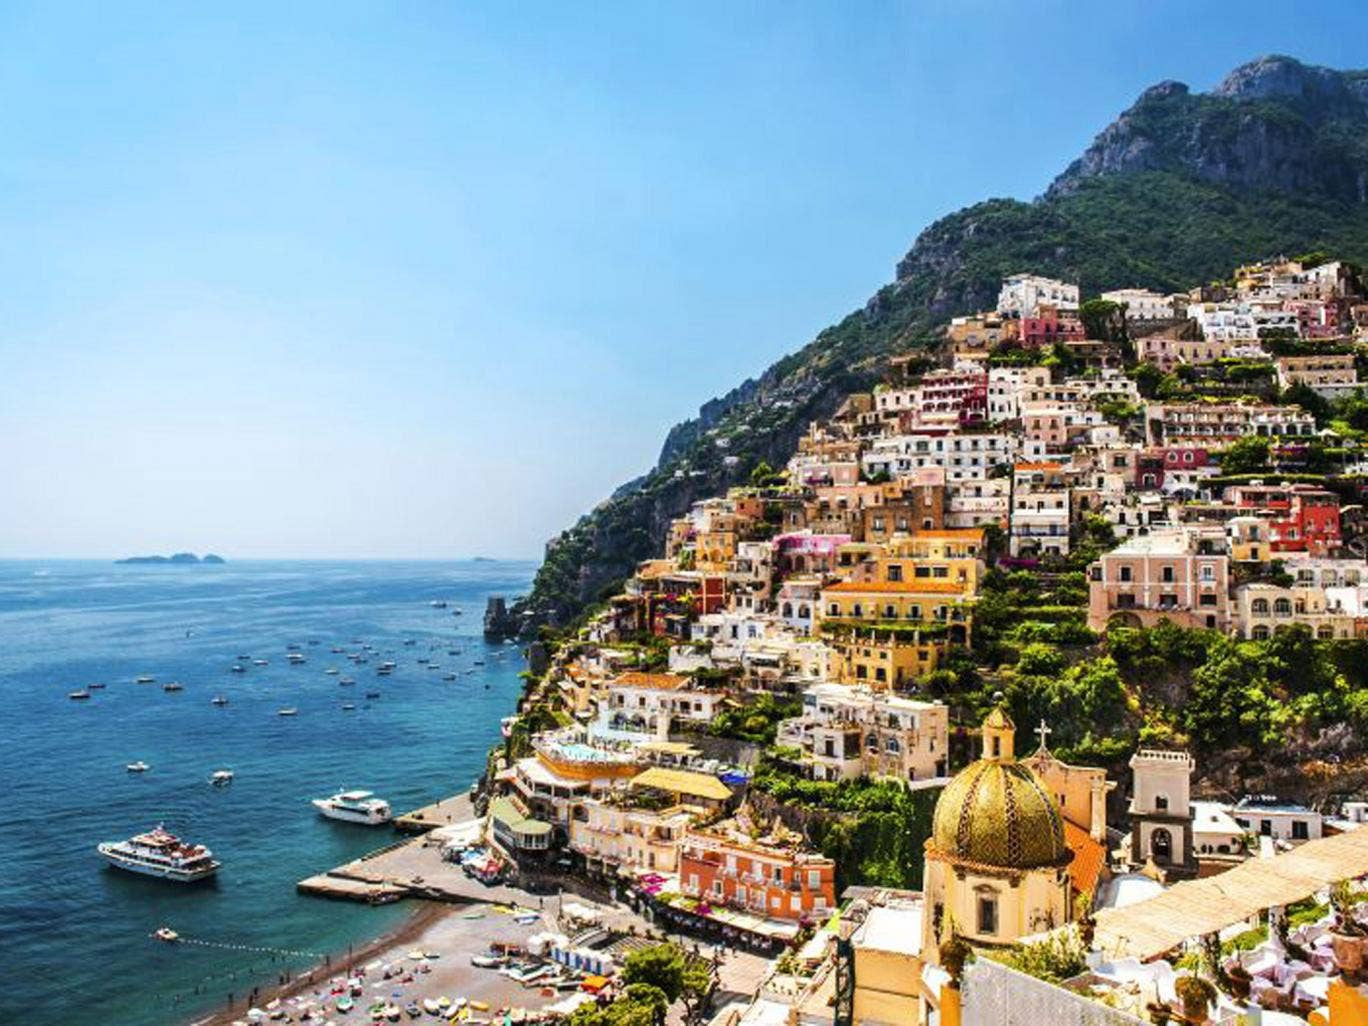 Picture perfect: the Amalfi Coast